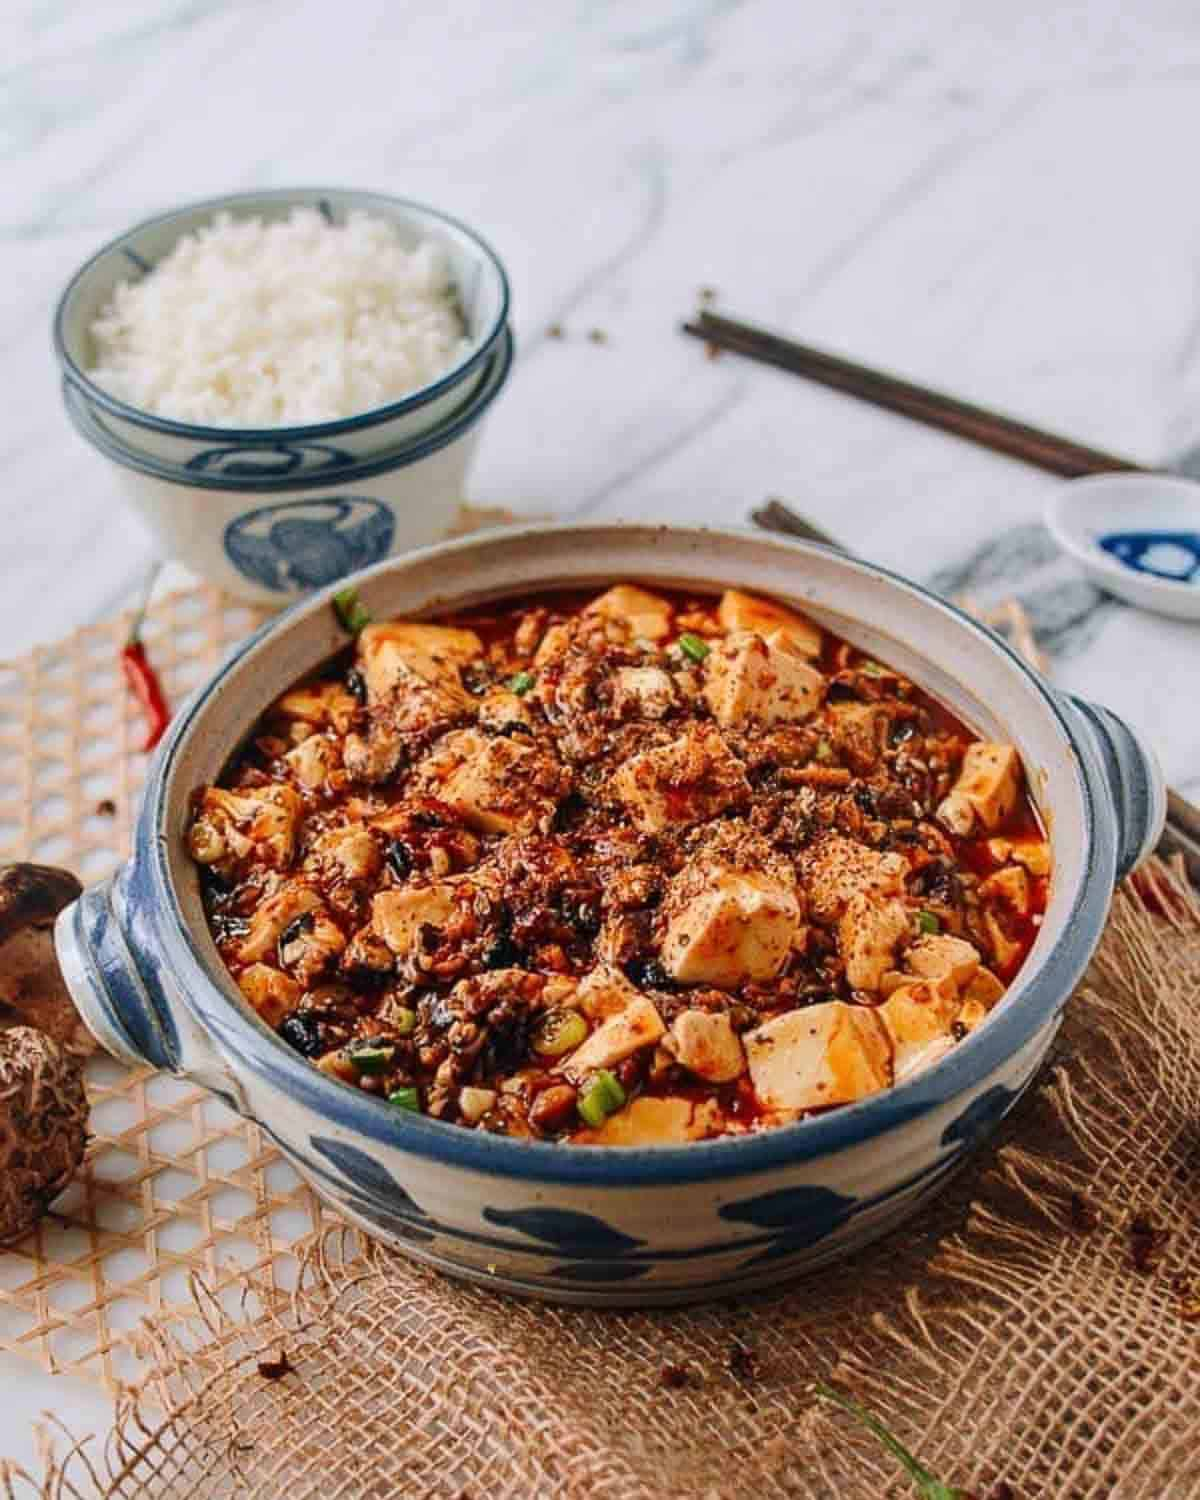 A pot of mapo tofu with a bowl of rice and chopsticks in the background.